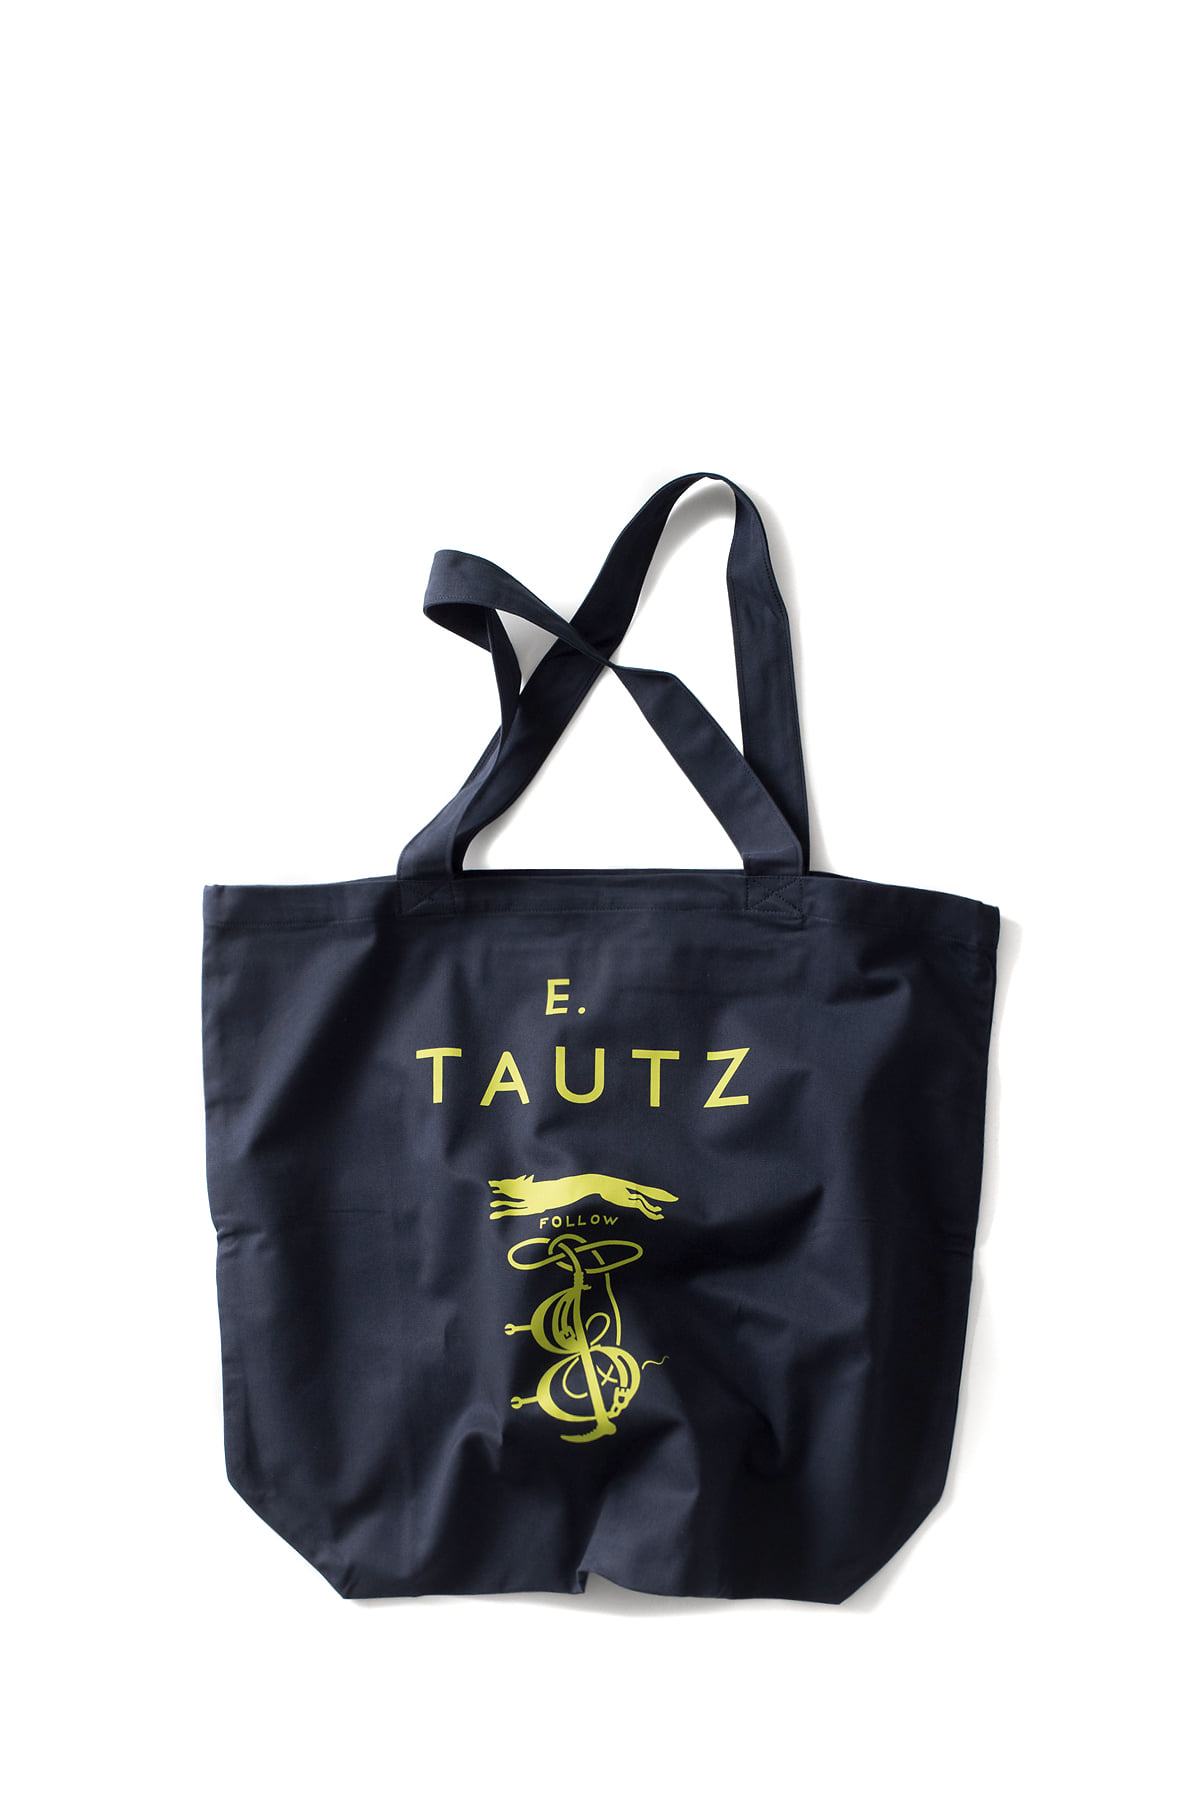 E. Tautz : Core Tote Bag (Neon)